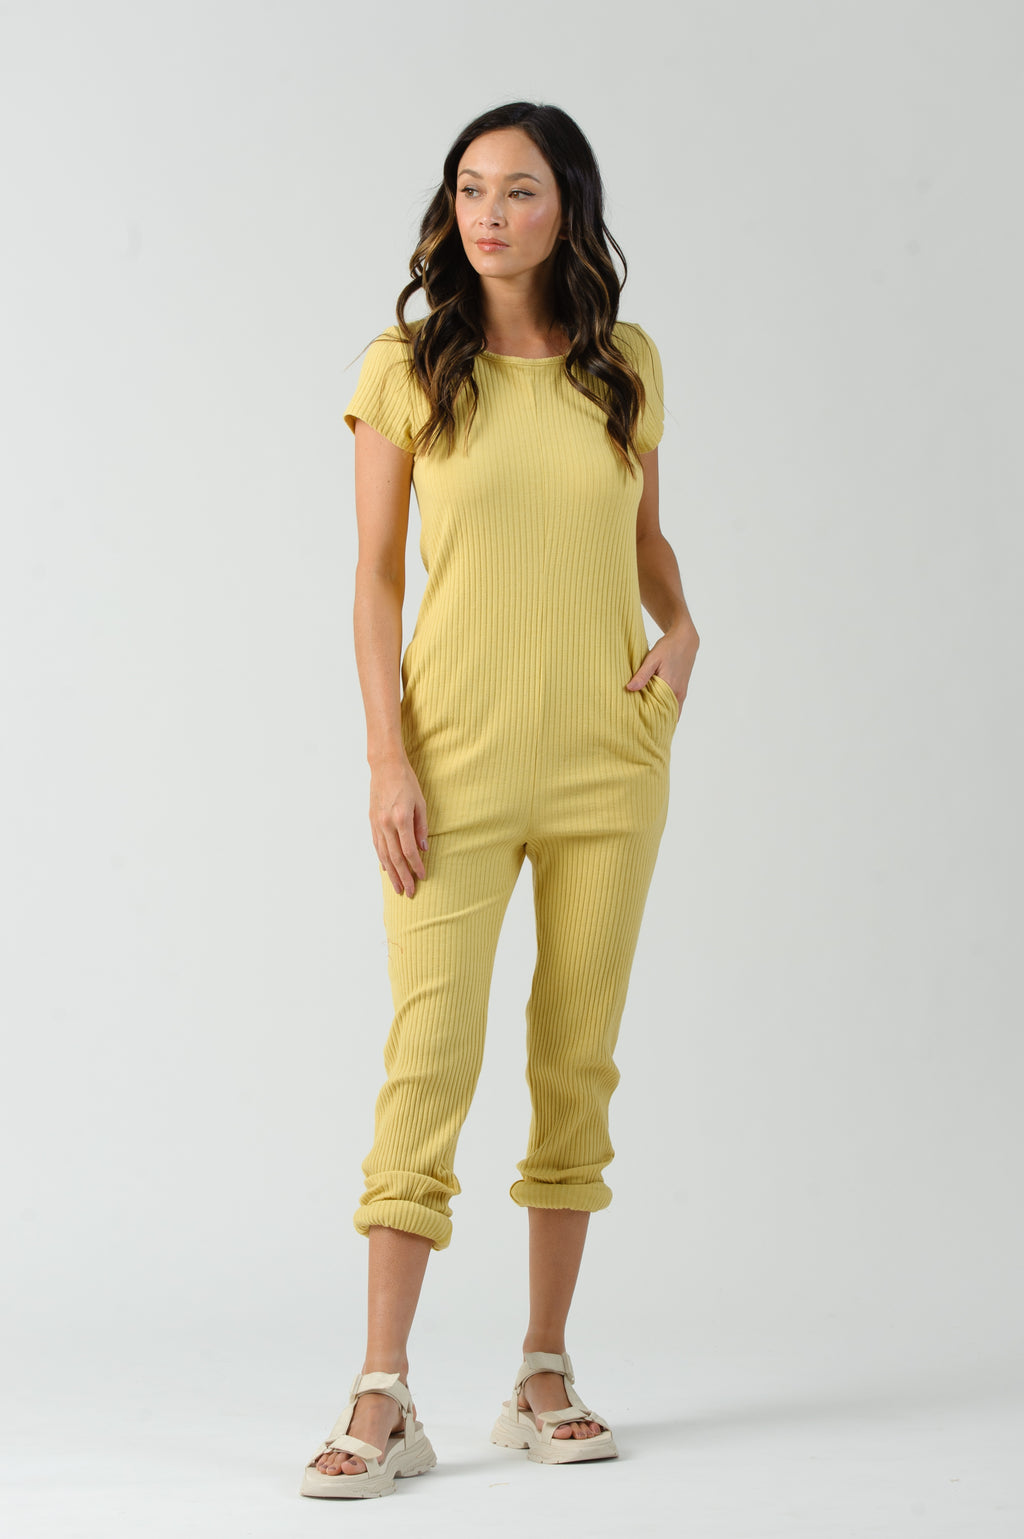 BLONDIE BACK SNAP CLOSURE JUMPSUIT | YELLOW